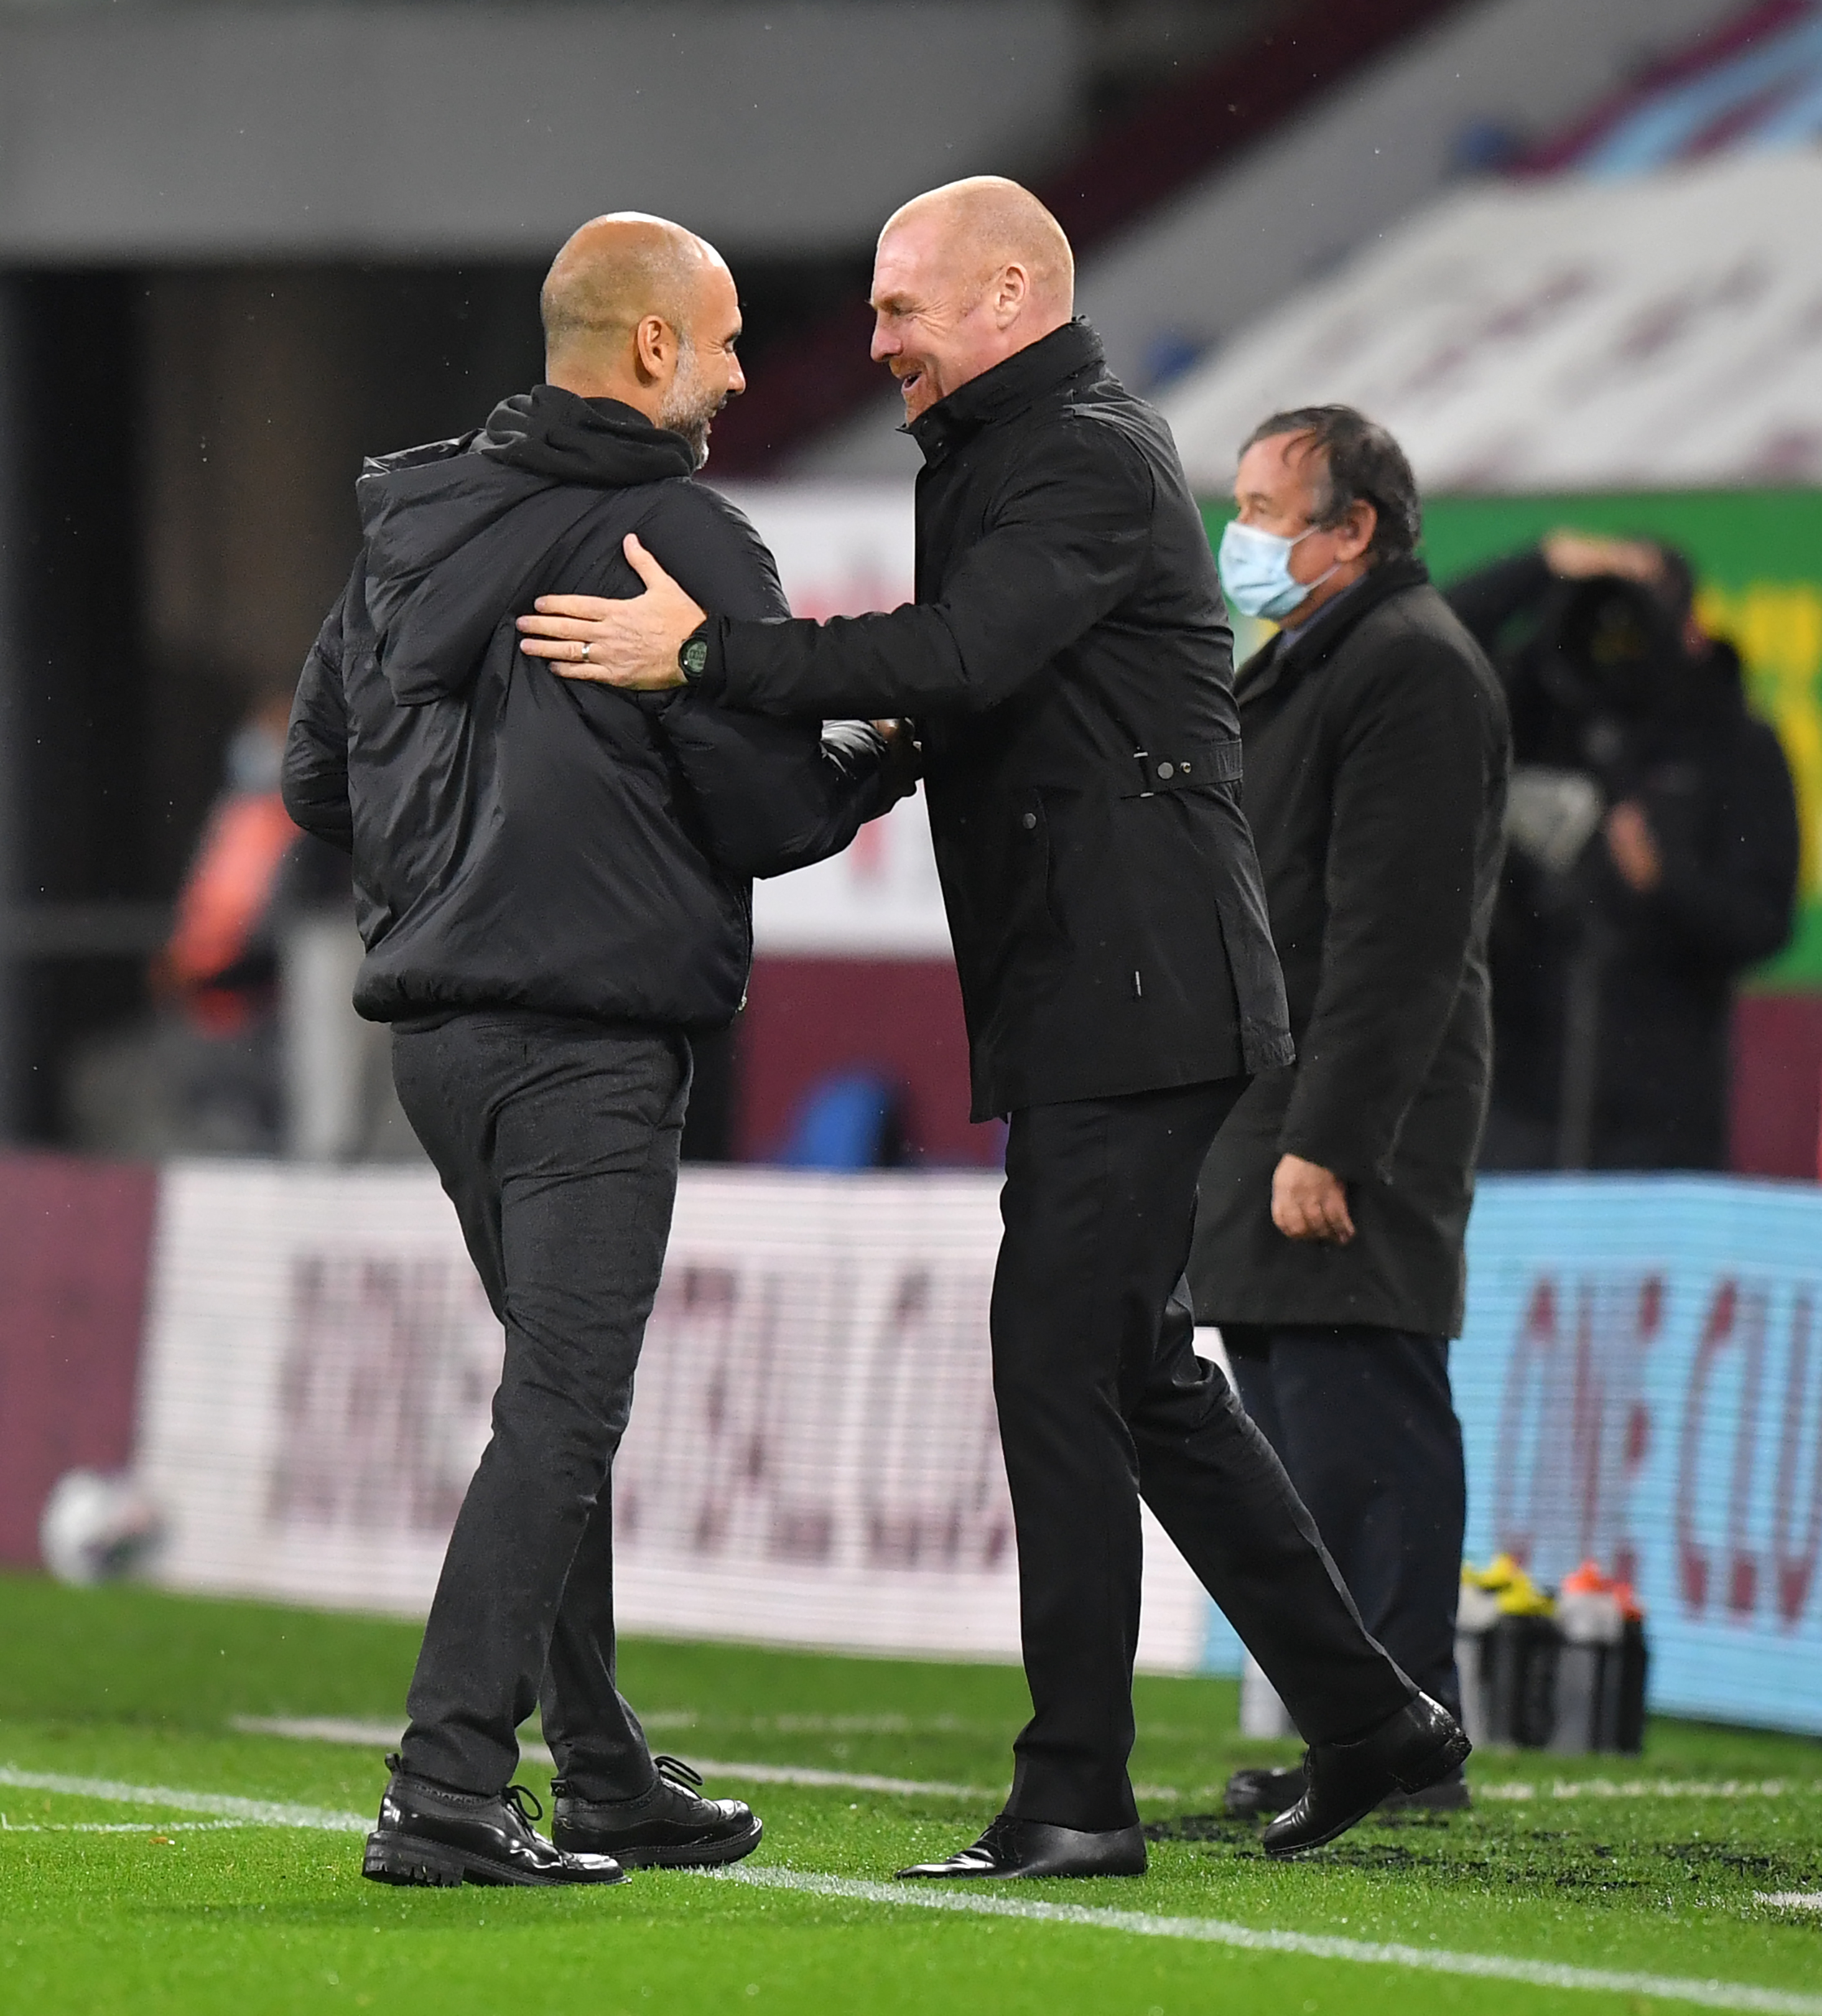 Burnley v Manchester City - Carabao Cup Fourth Round